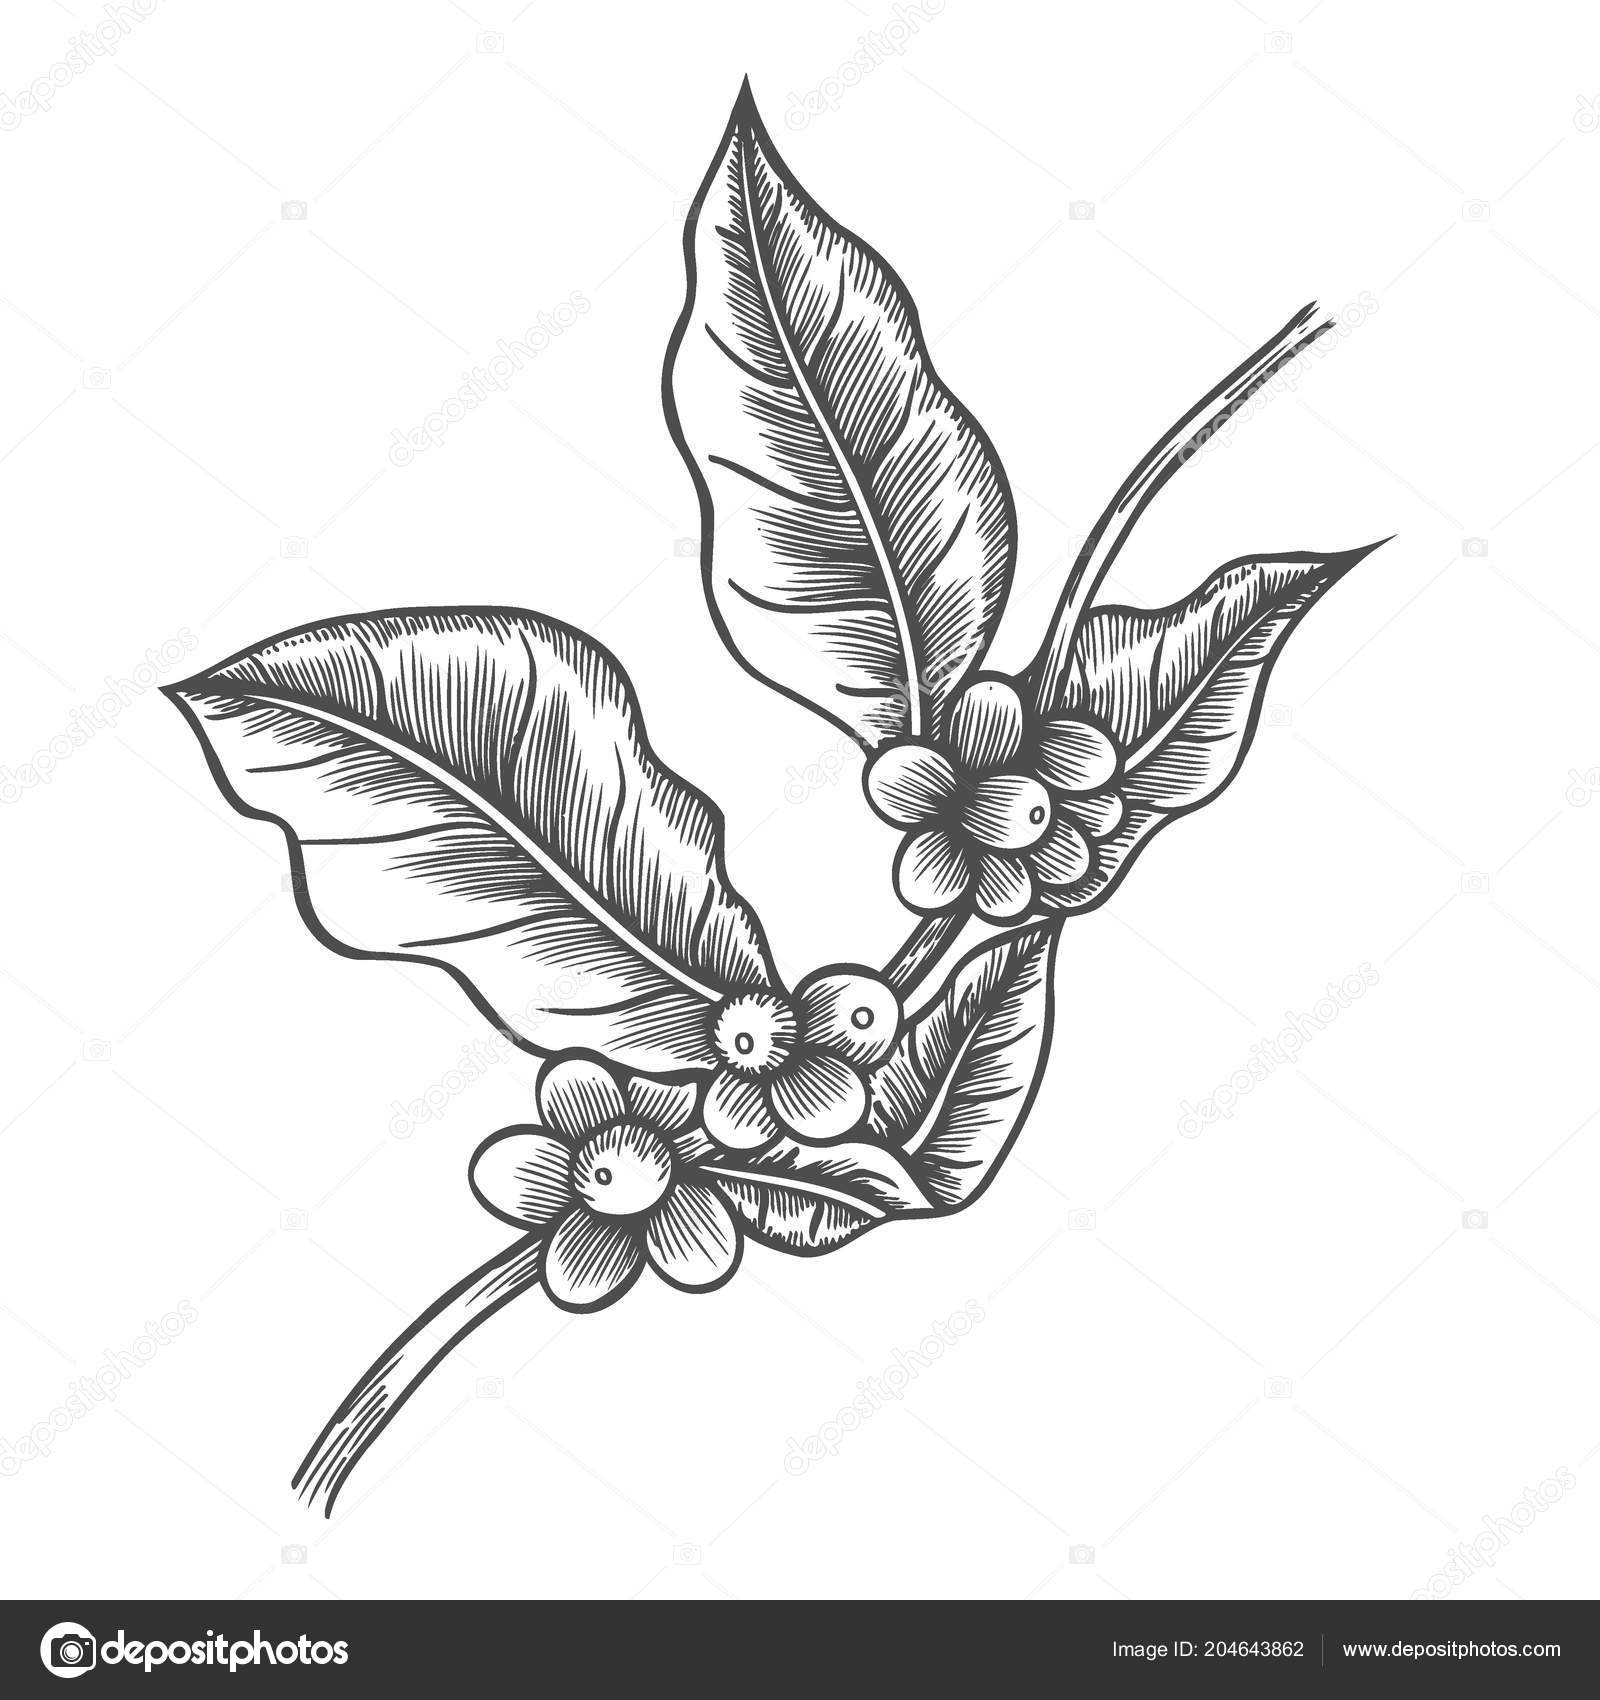 Coffee tree illustration engraved style illustration vintage image coffee tree illustration engraved style illustration vintage image style stock vector thecheapjerseys Gallery